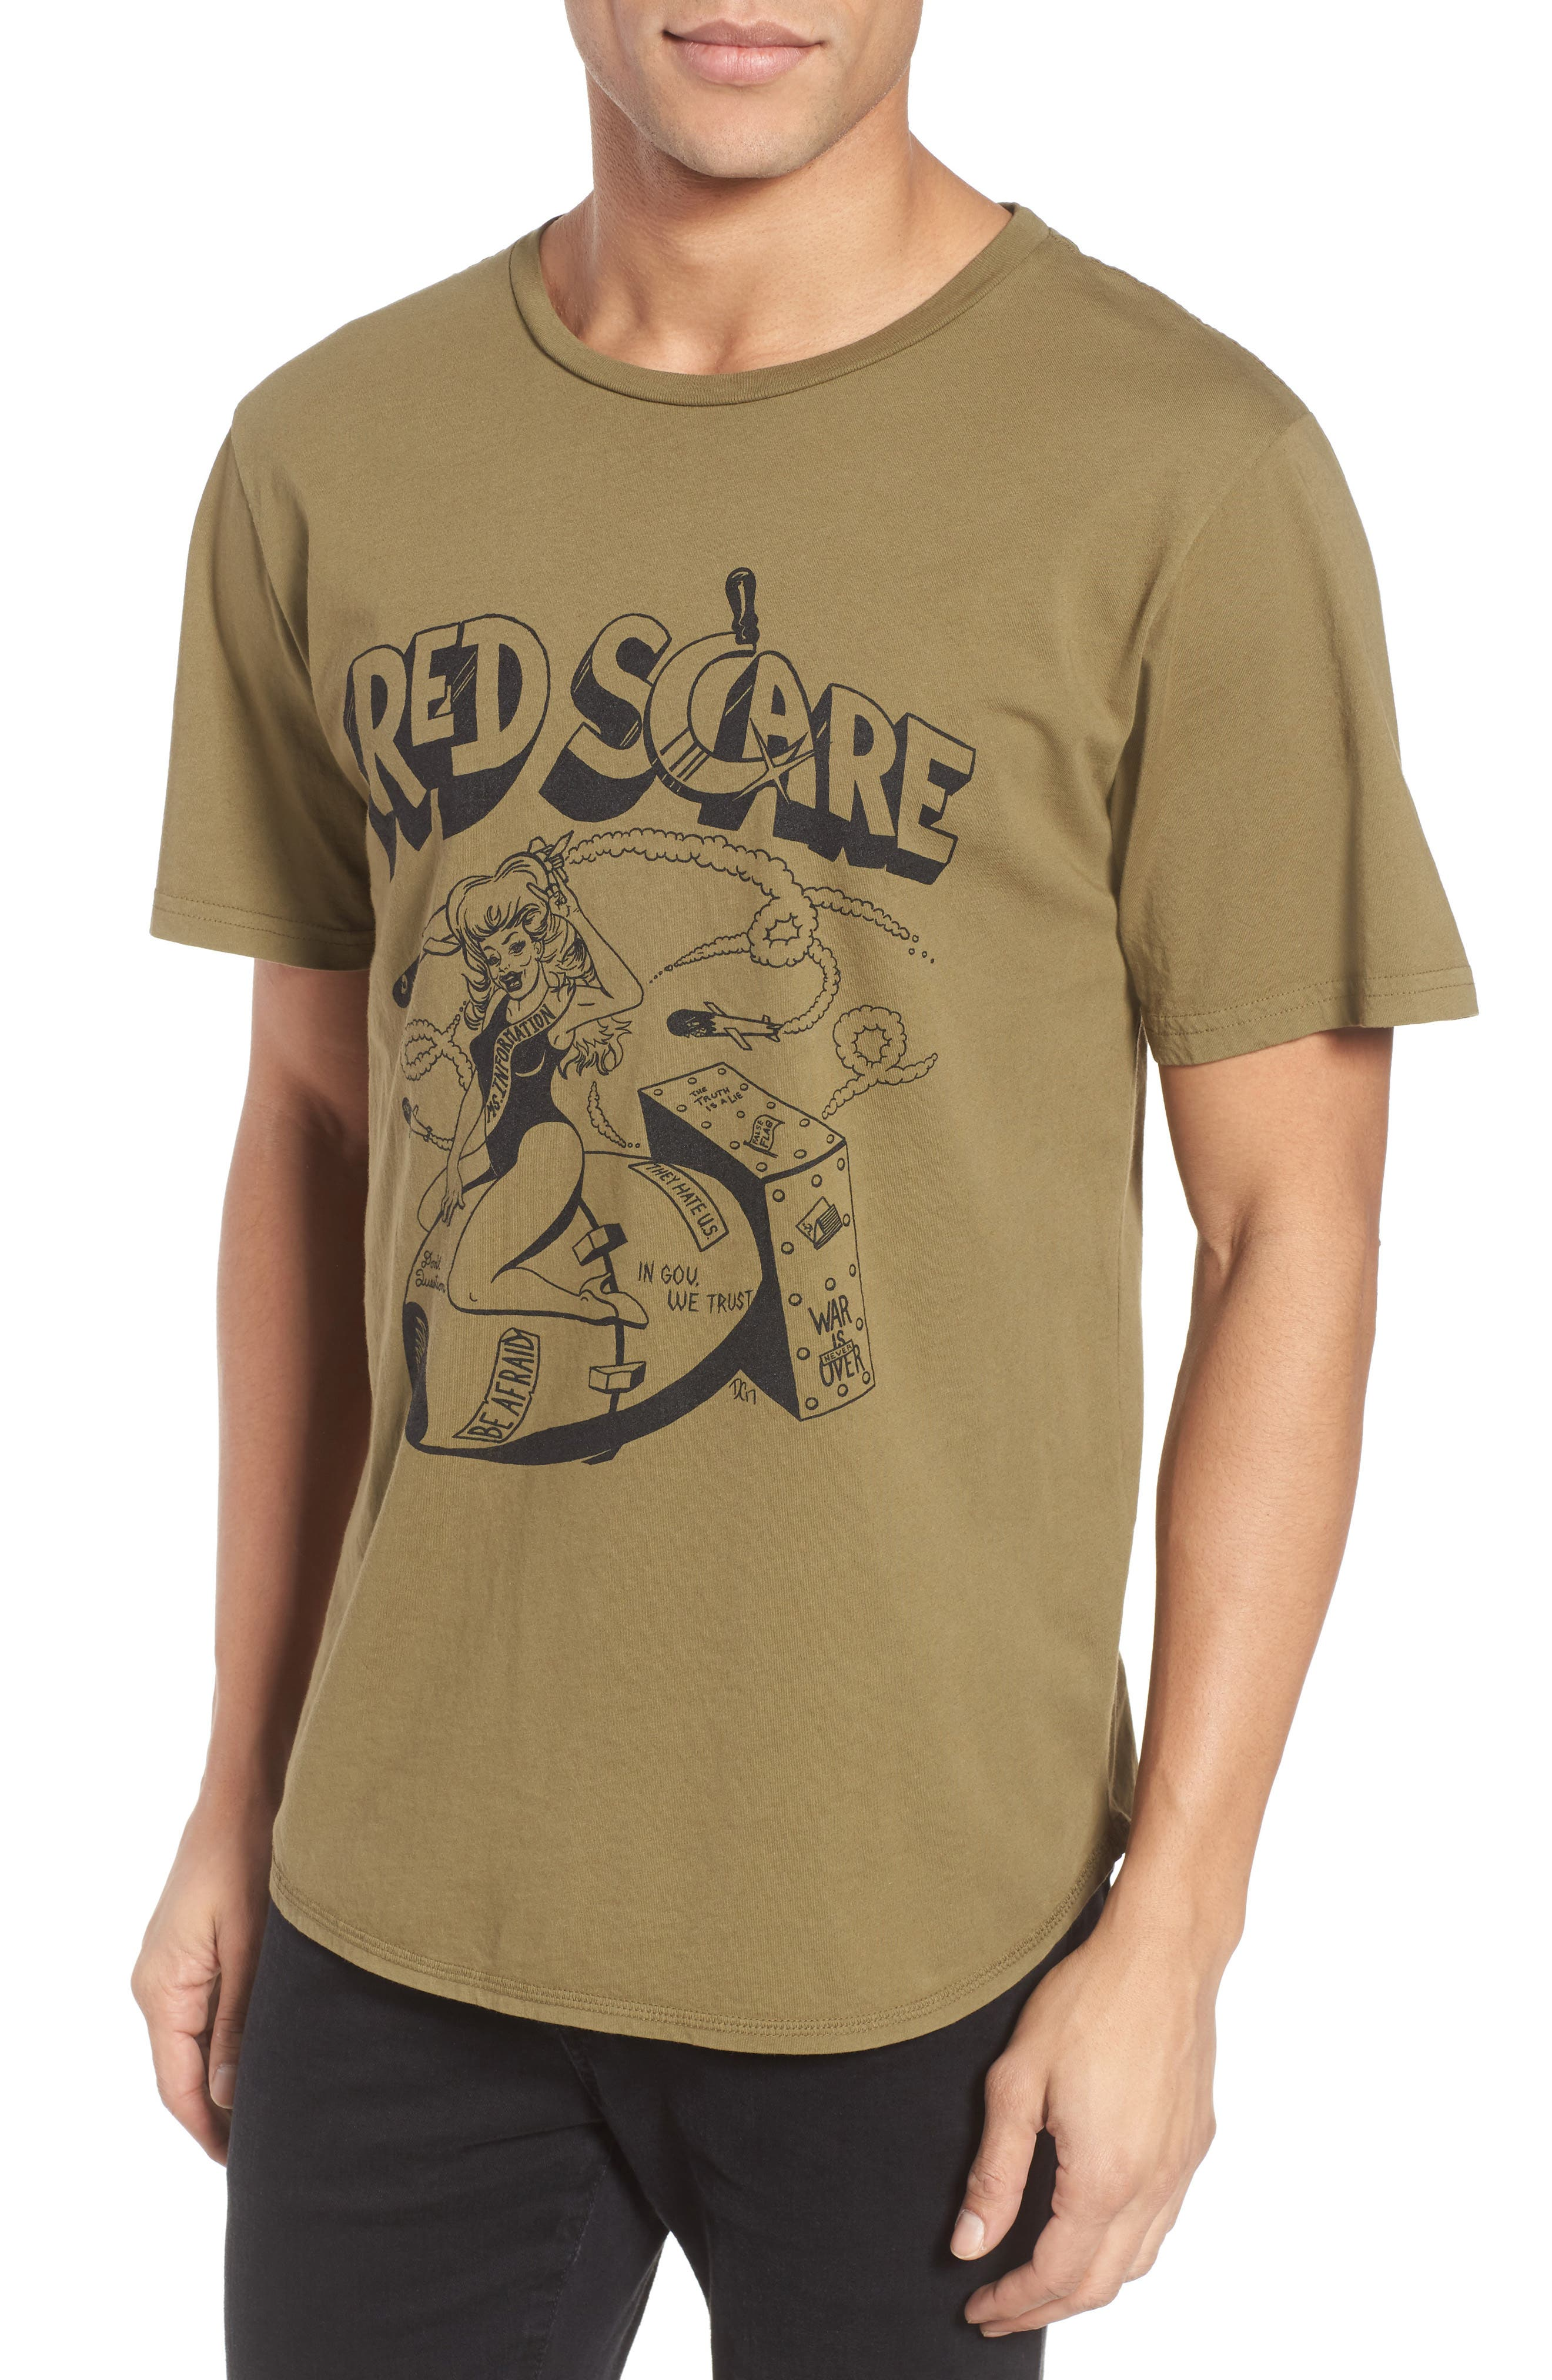 Red Scare Graphic T-Shirt,                         Main,                         color, 300